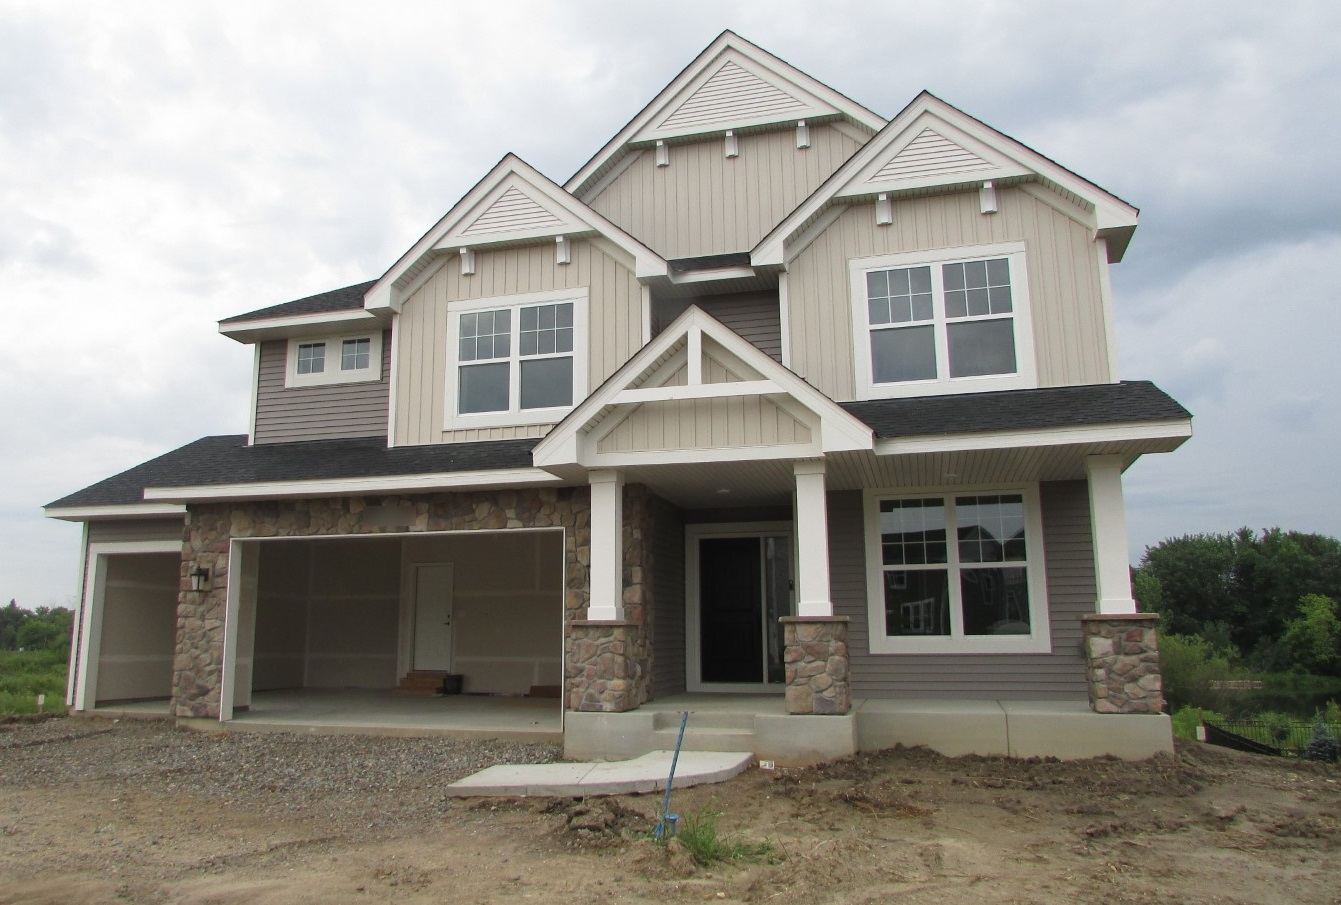 New Construction Inspections - Structure Tech Home Inspections